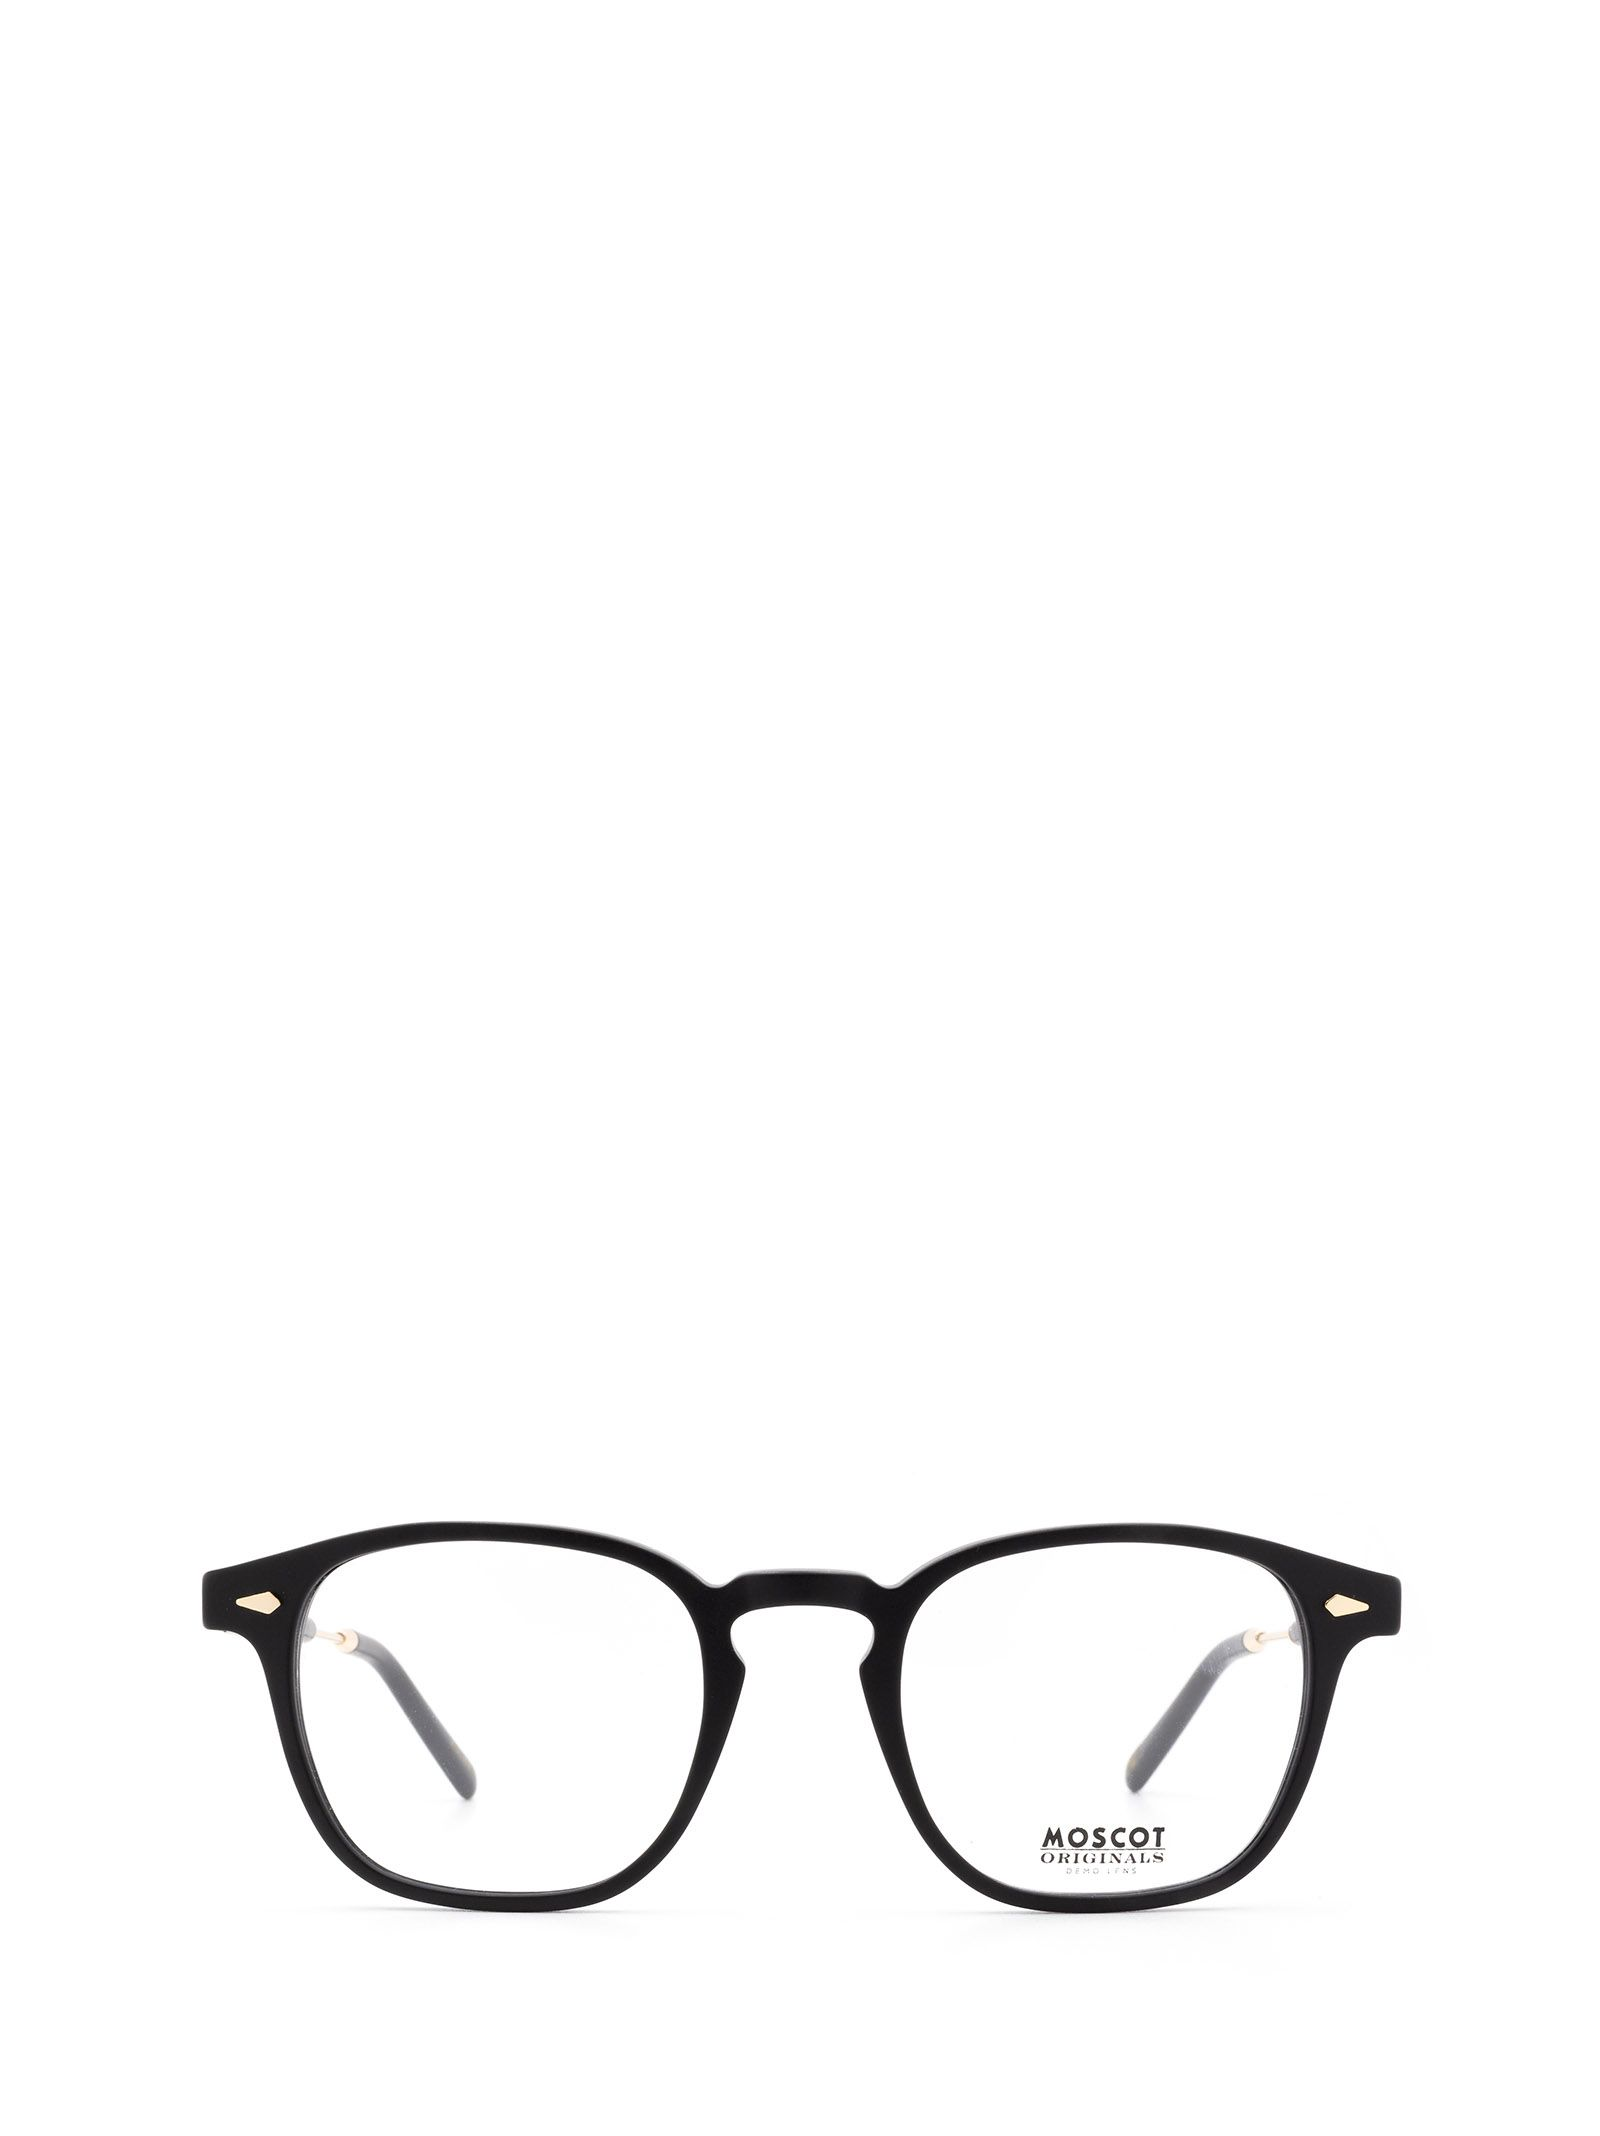 Moscot MOSCOT WOMEN'S GOLD METAL GLASSES